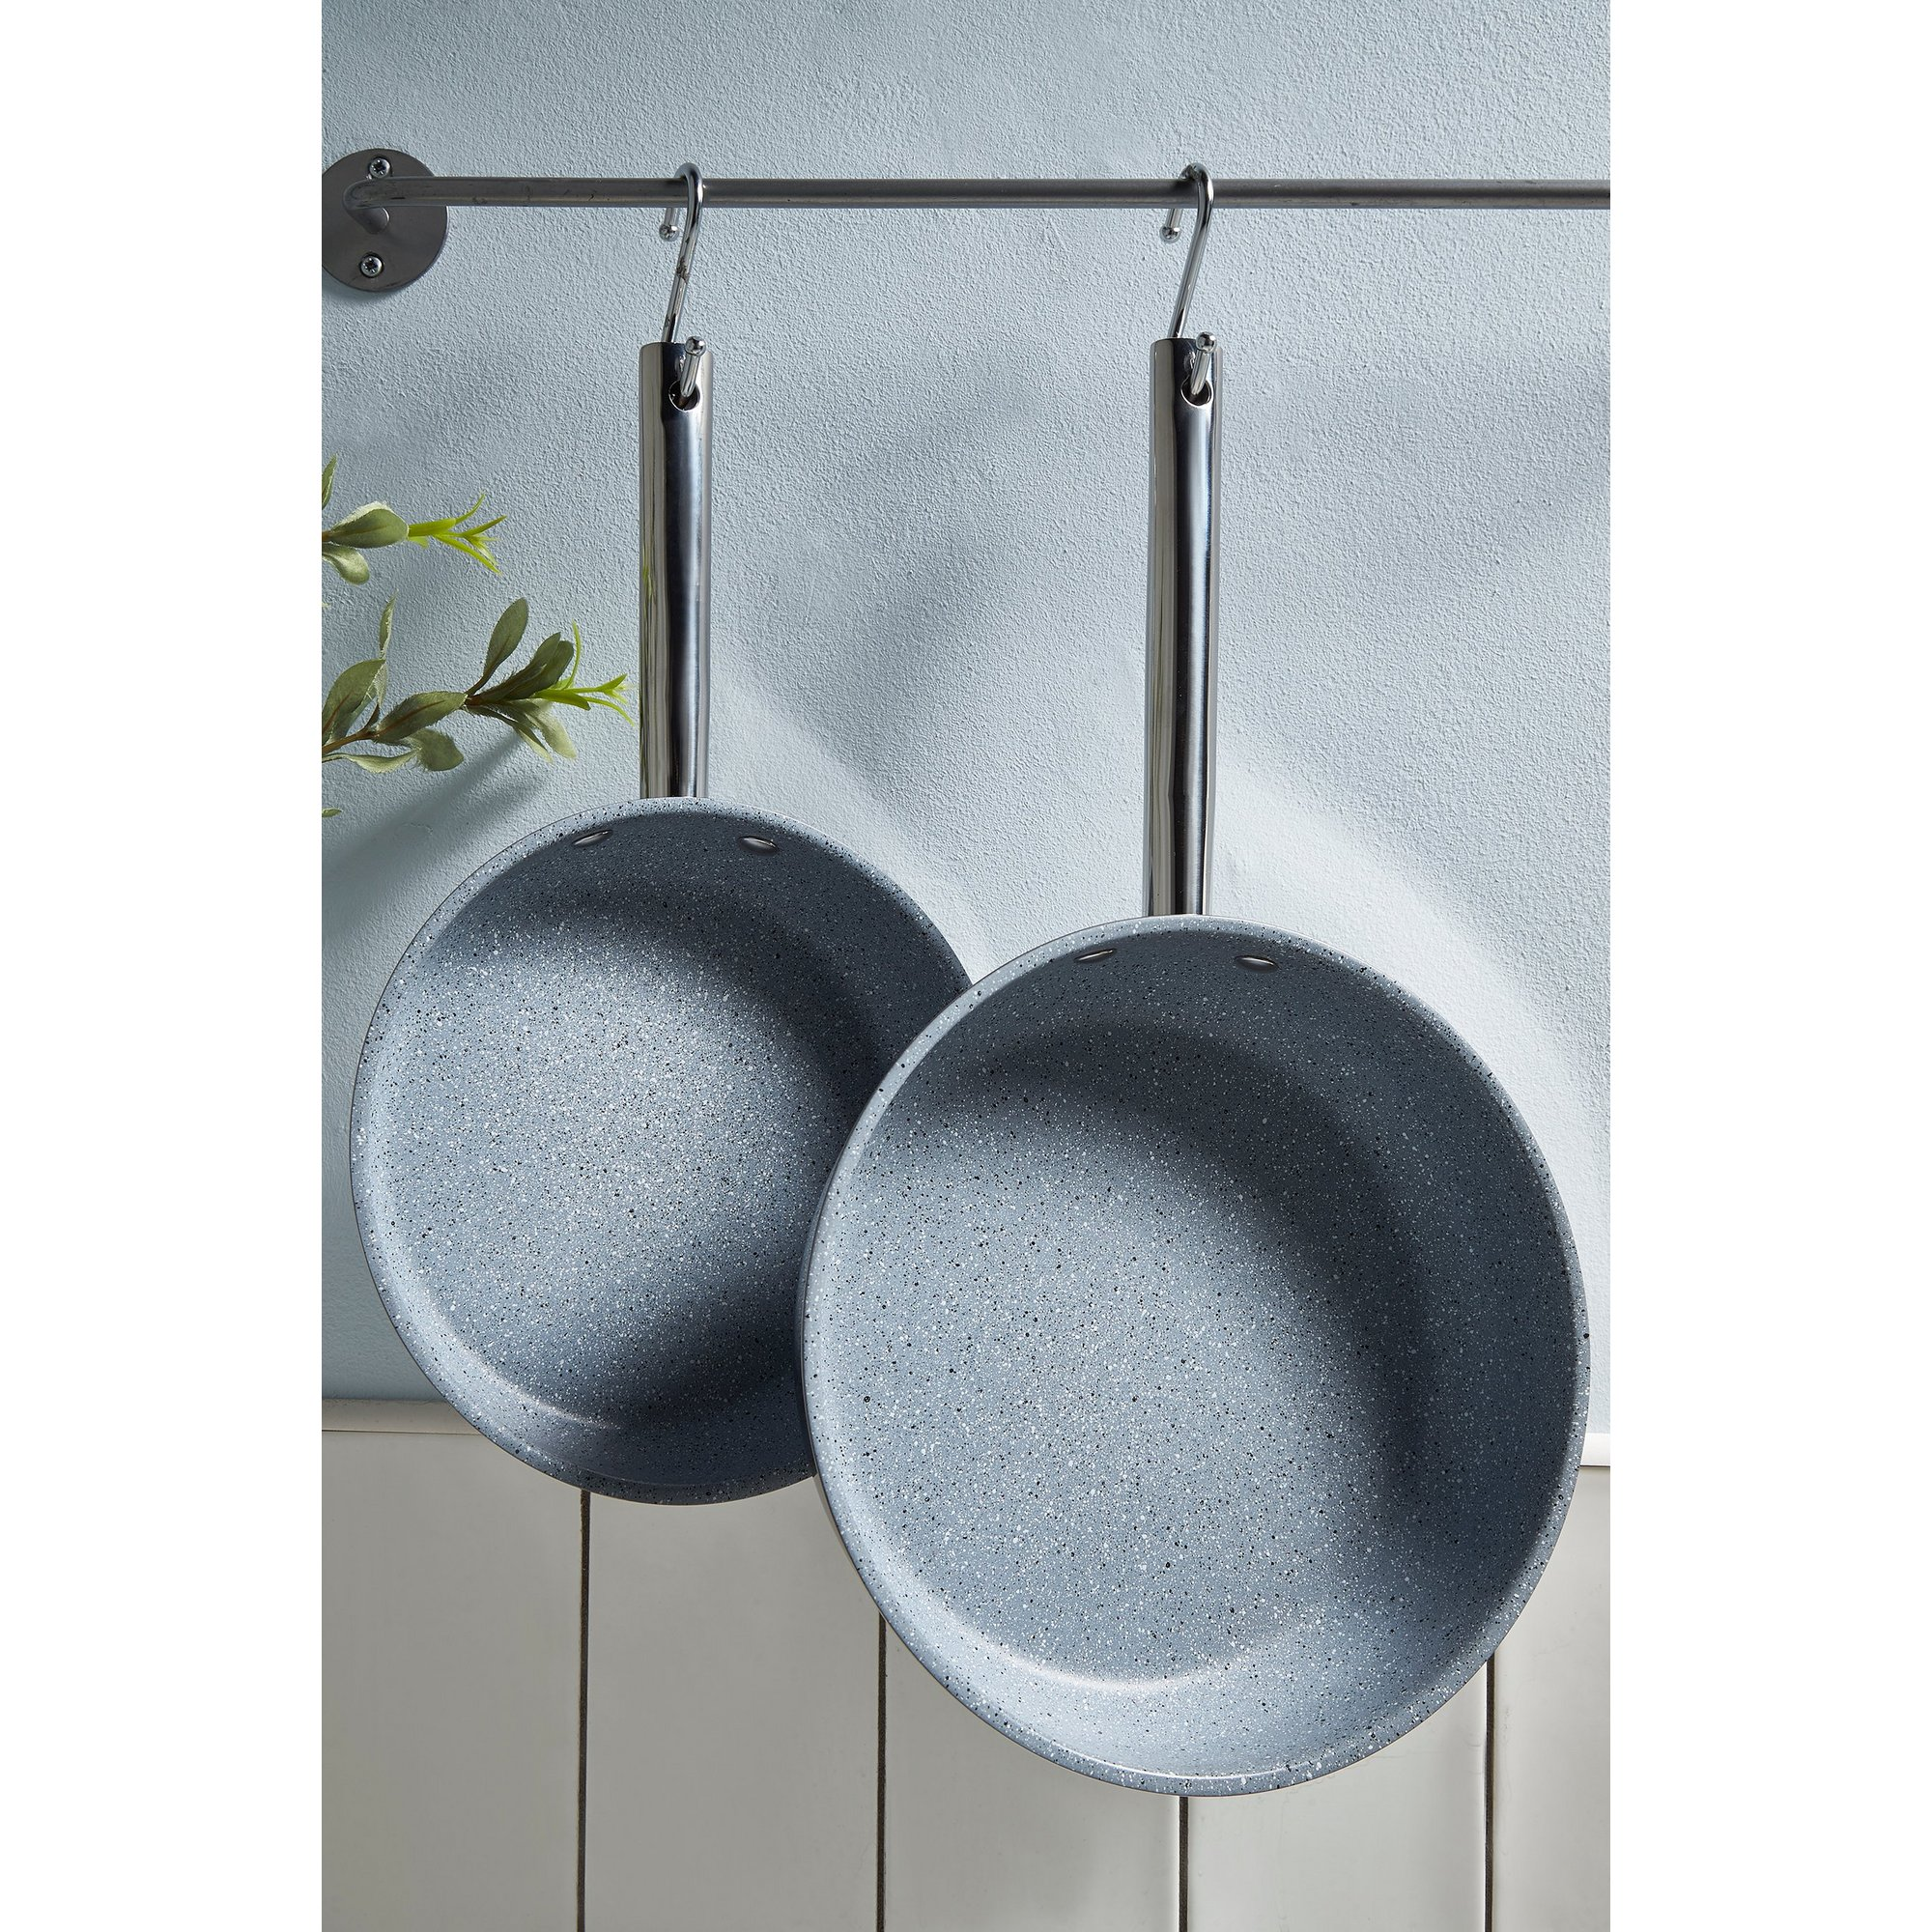 Image of Durastone Set of 2 Non-Stick Stainless Steel Frying Pans